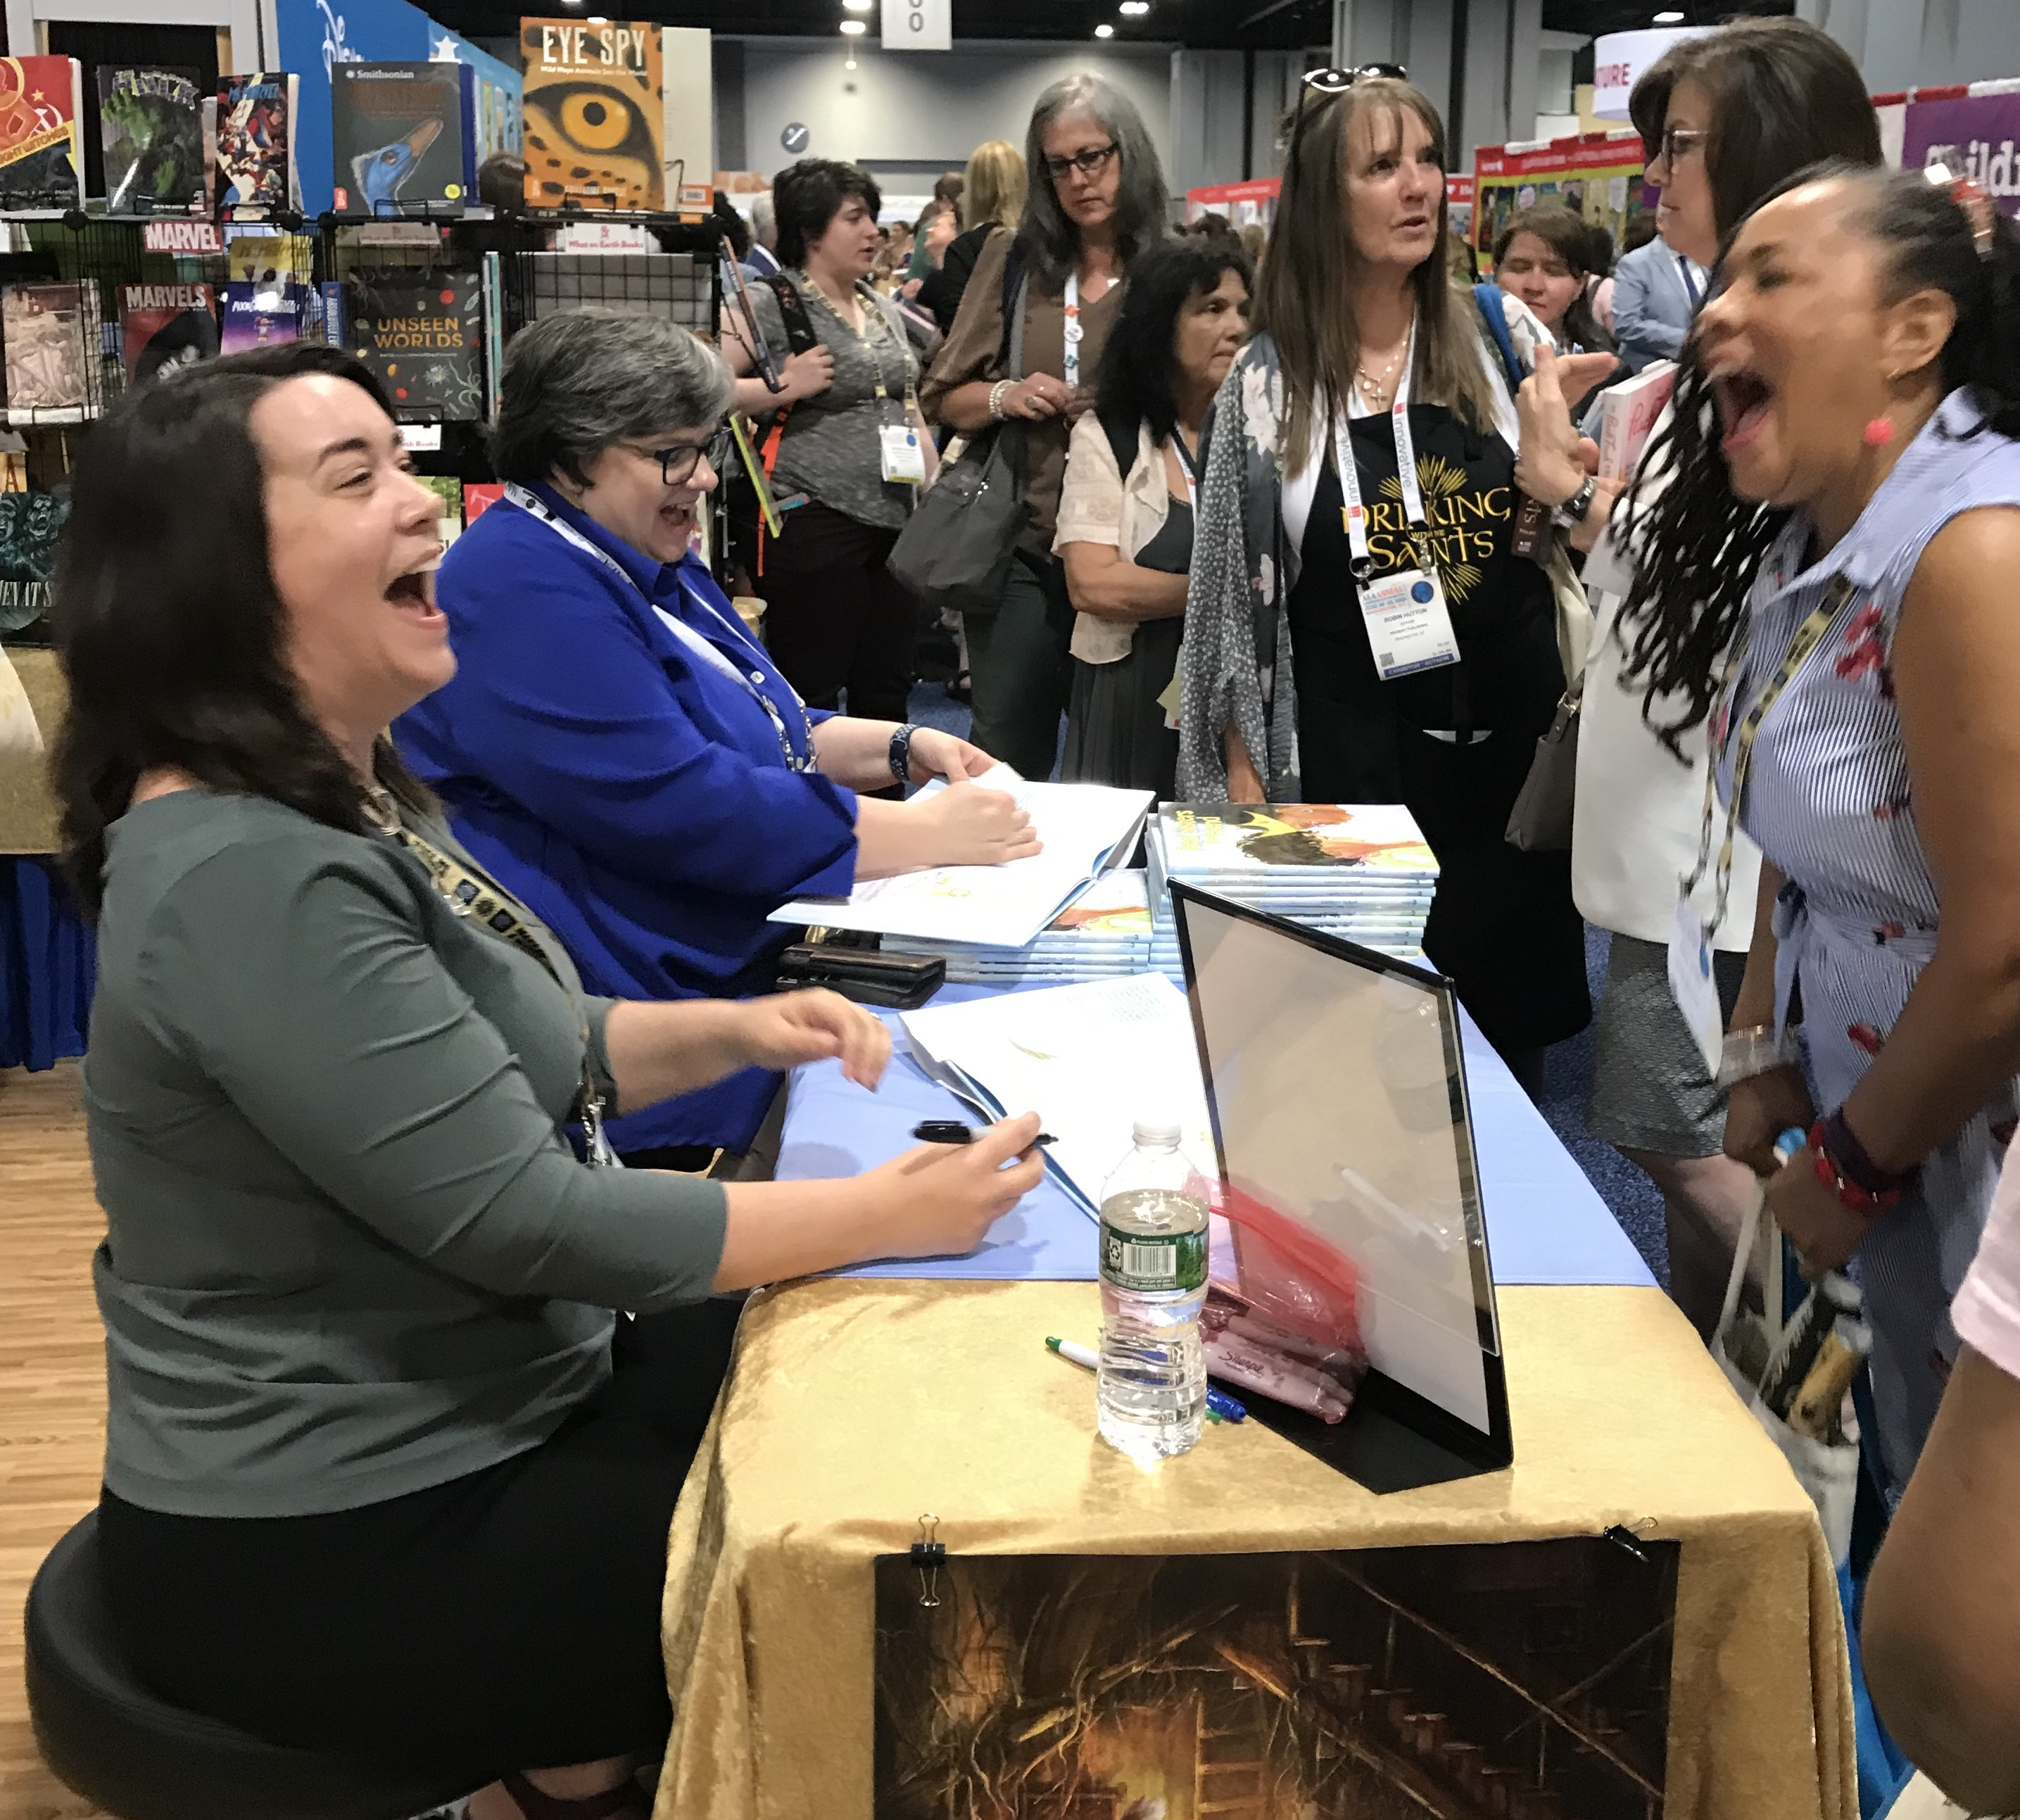 Author Megan Dowd Lambert meets a fan